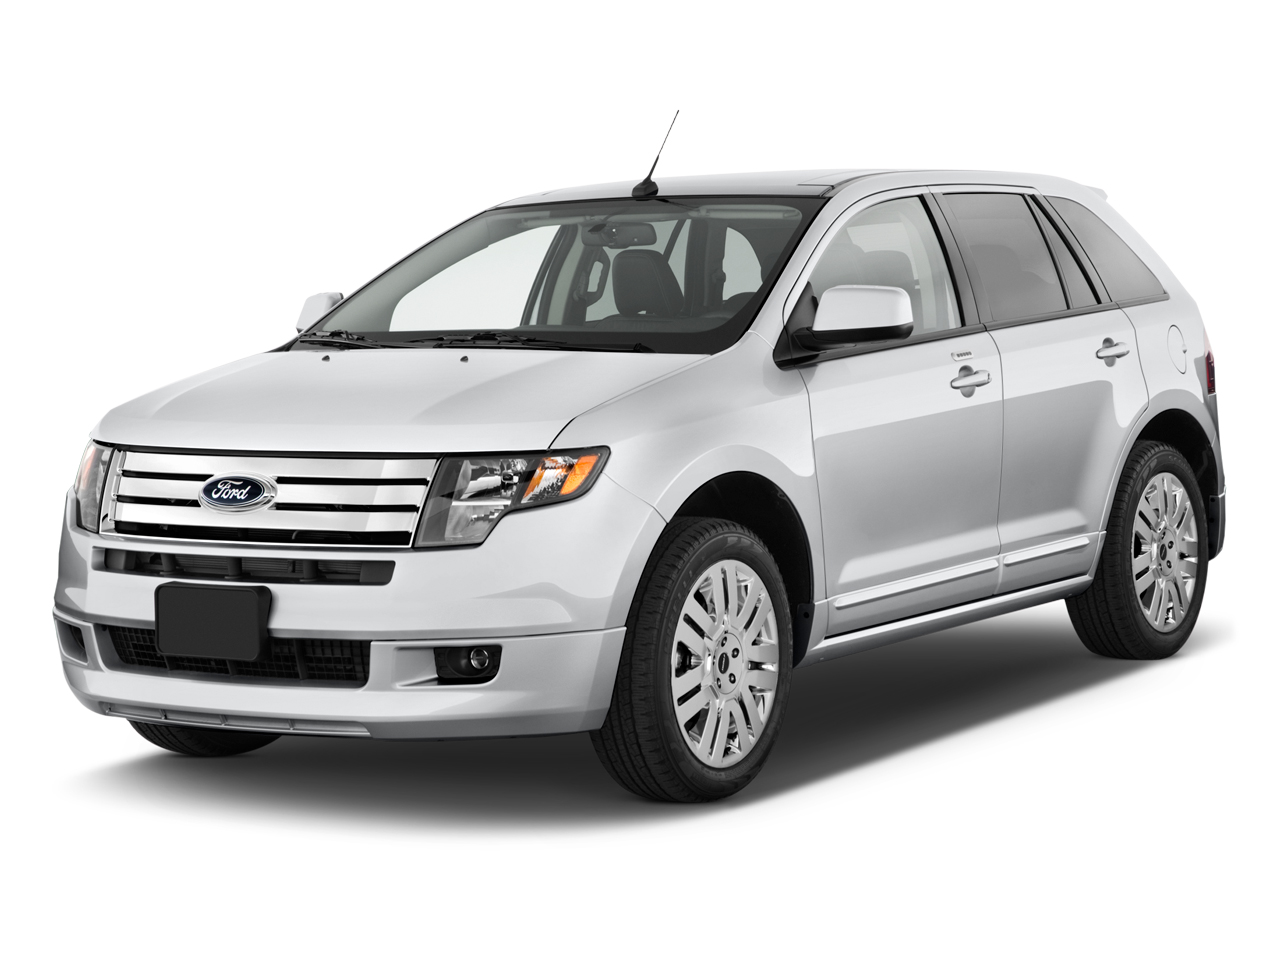 2011 ford edge gas mileage the car connection. Black Bedroom Furniture Sets. Home Design Ideas